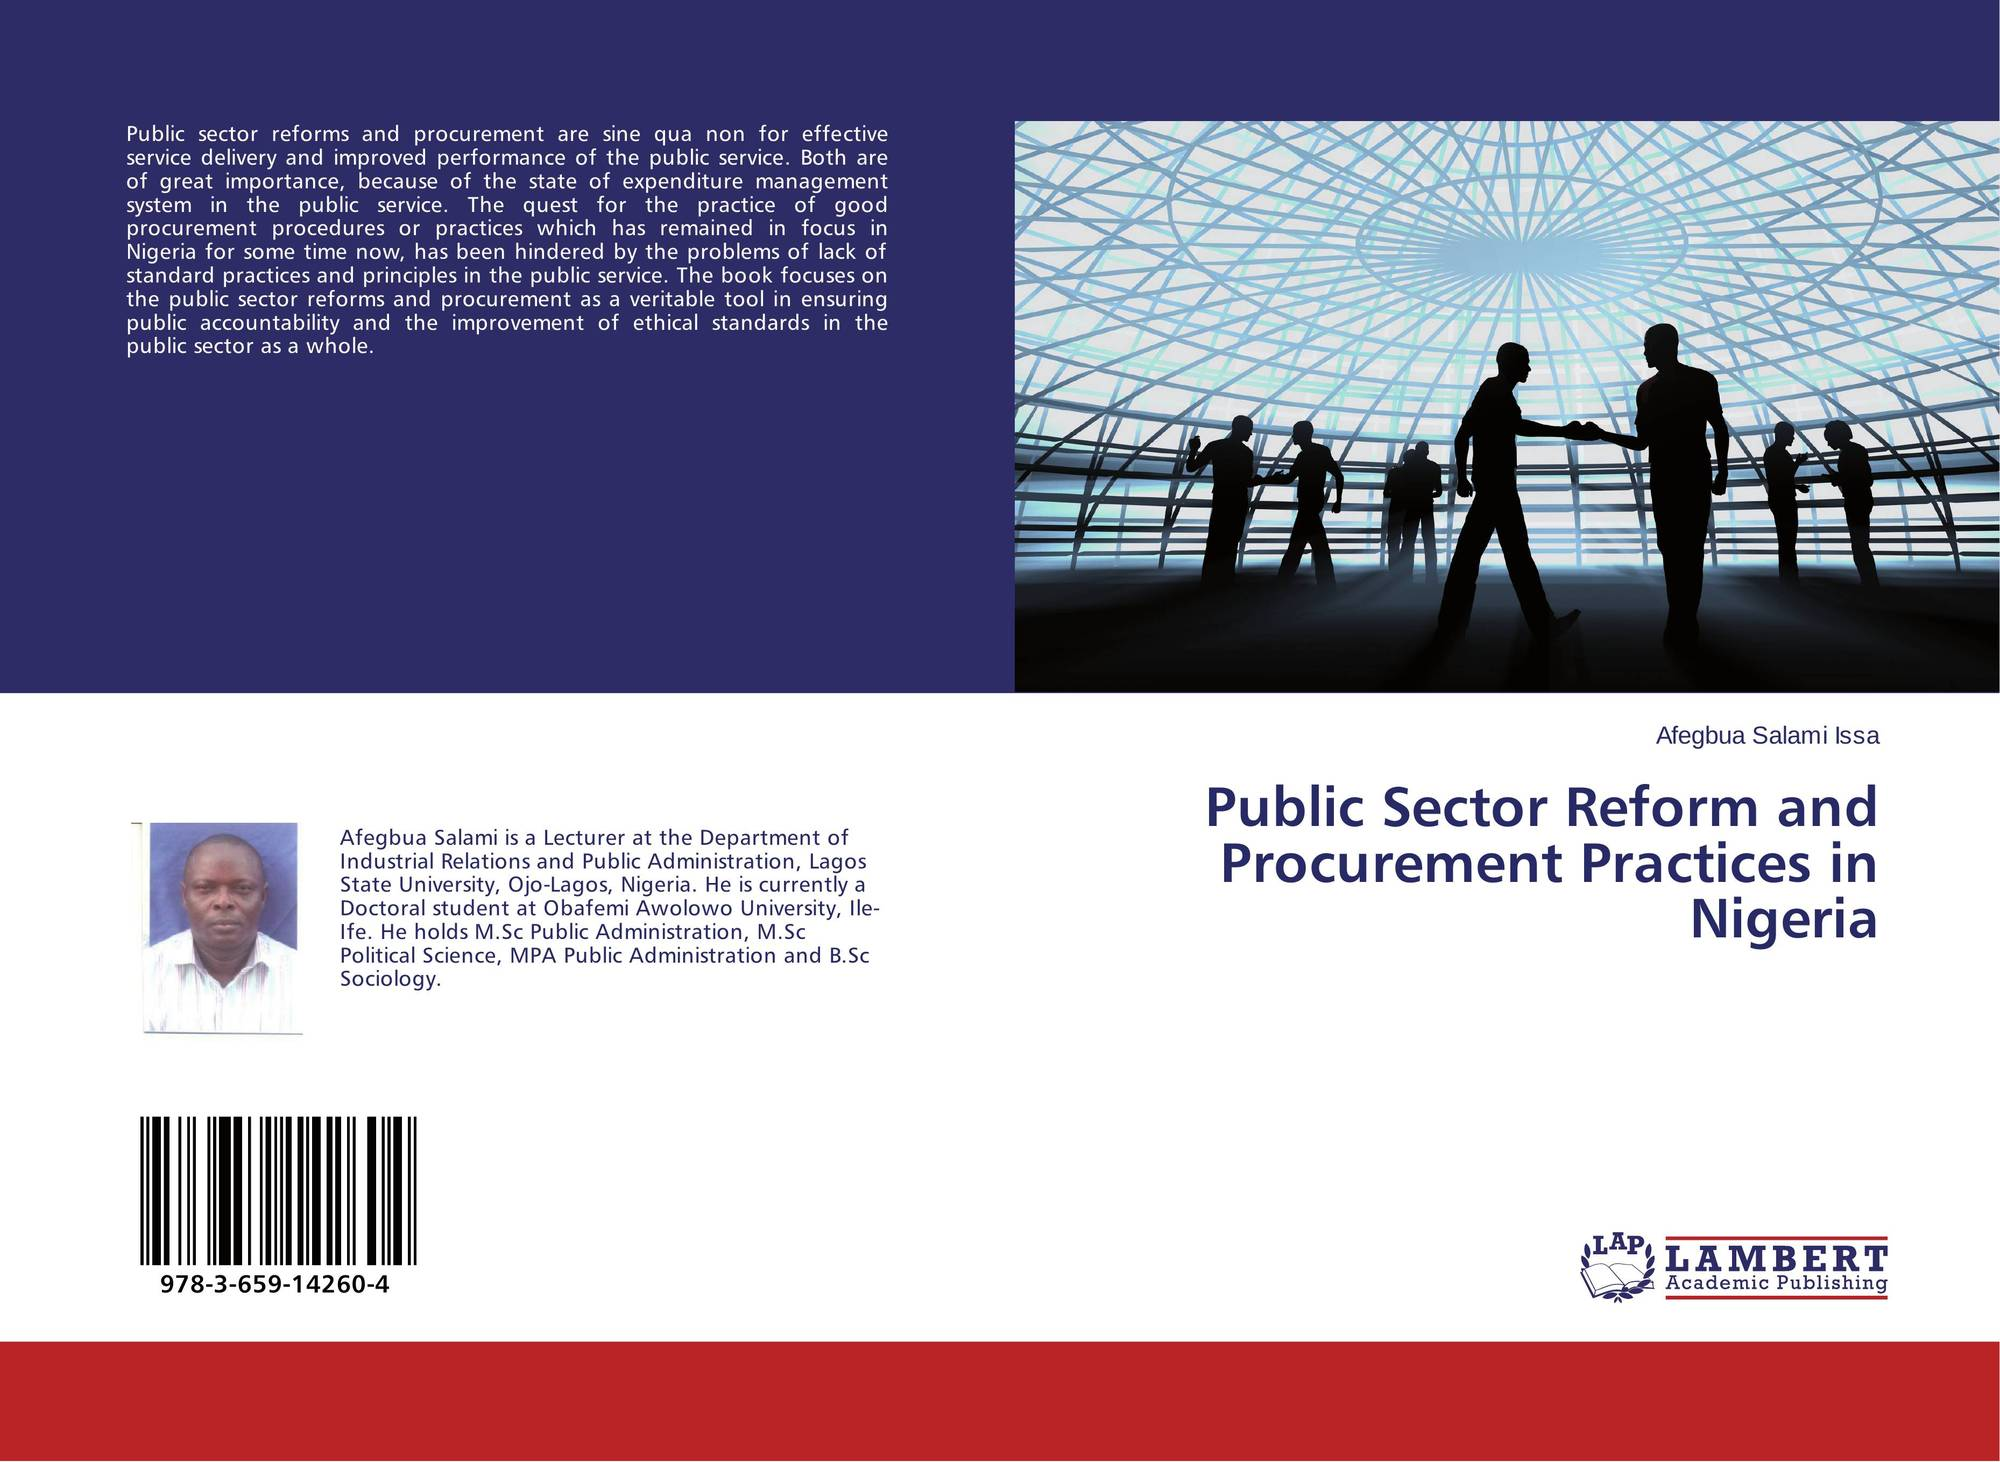 an analysis of the public sector ombudsman serve a useful function Following considerable public pressure, in 1989, the hong kong government followed many other countries and established an ombudsman the establishment of the post has to be seen in the context of the political awakening of hong kong and demands for a more accountable and client-oriented public.